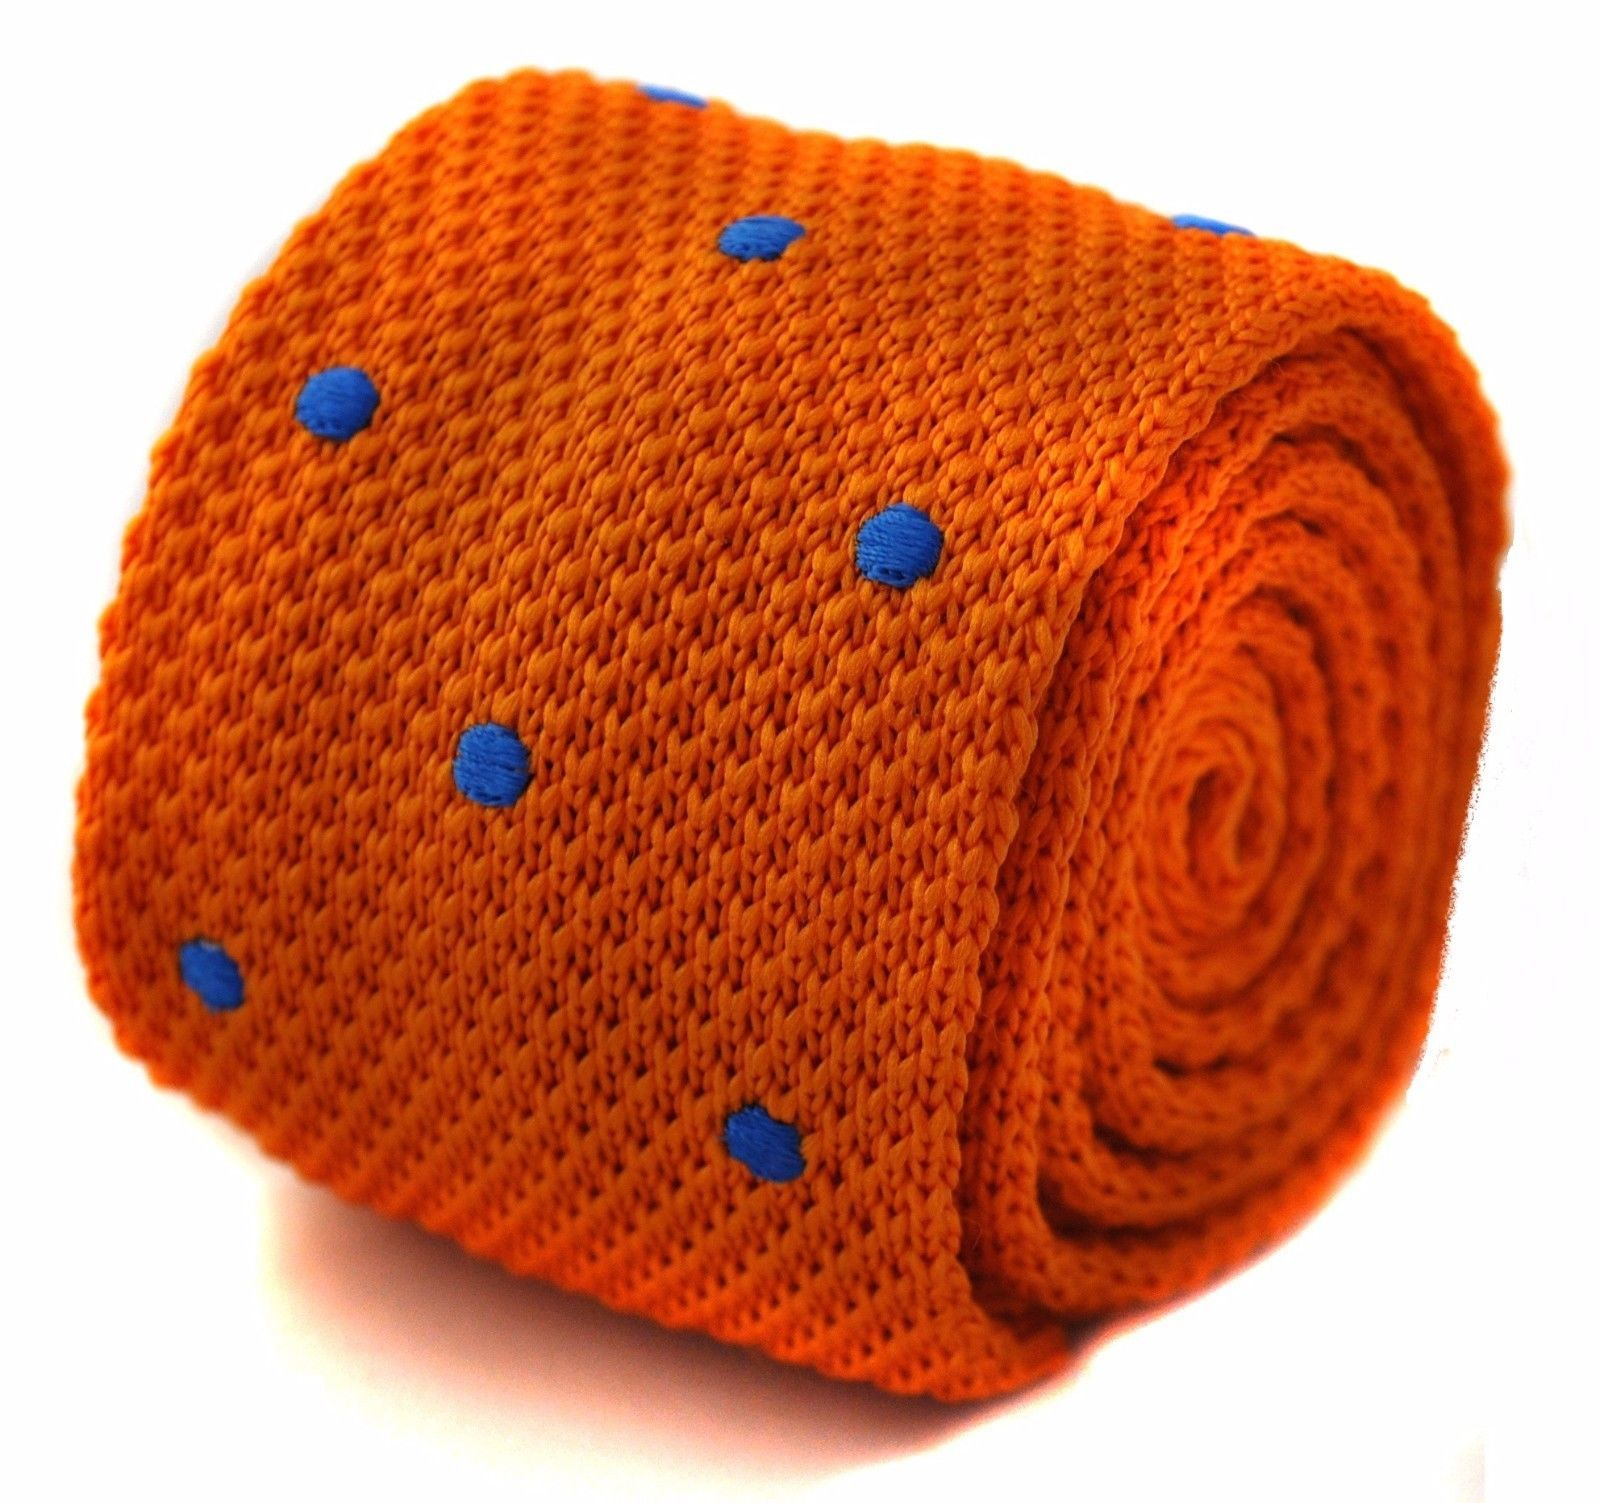 orange skinny knitted tie with royal blue polka spots by Frederick Thomas FT1164